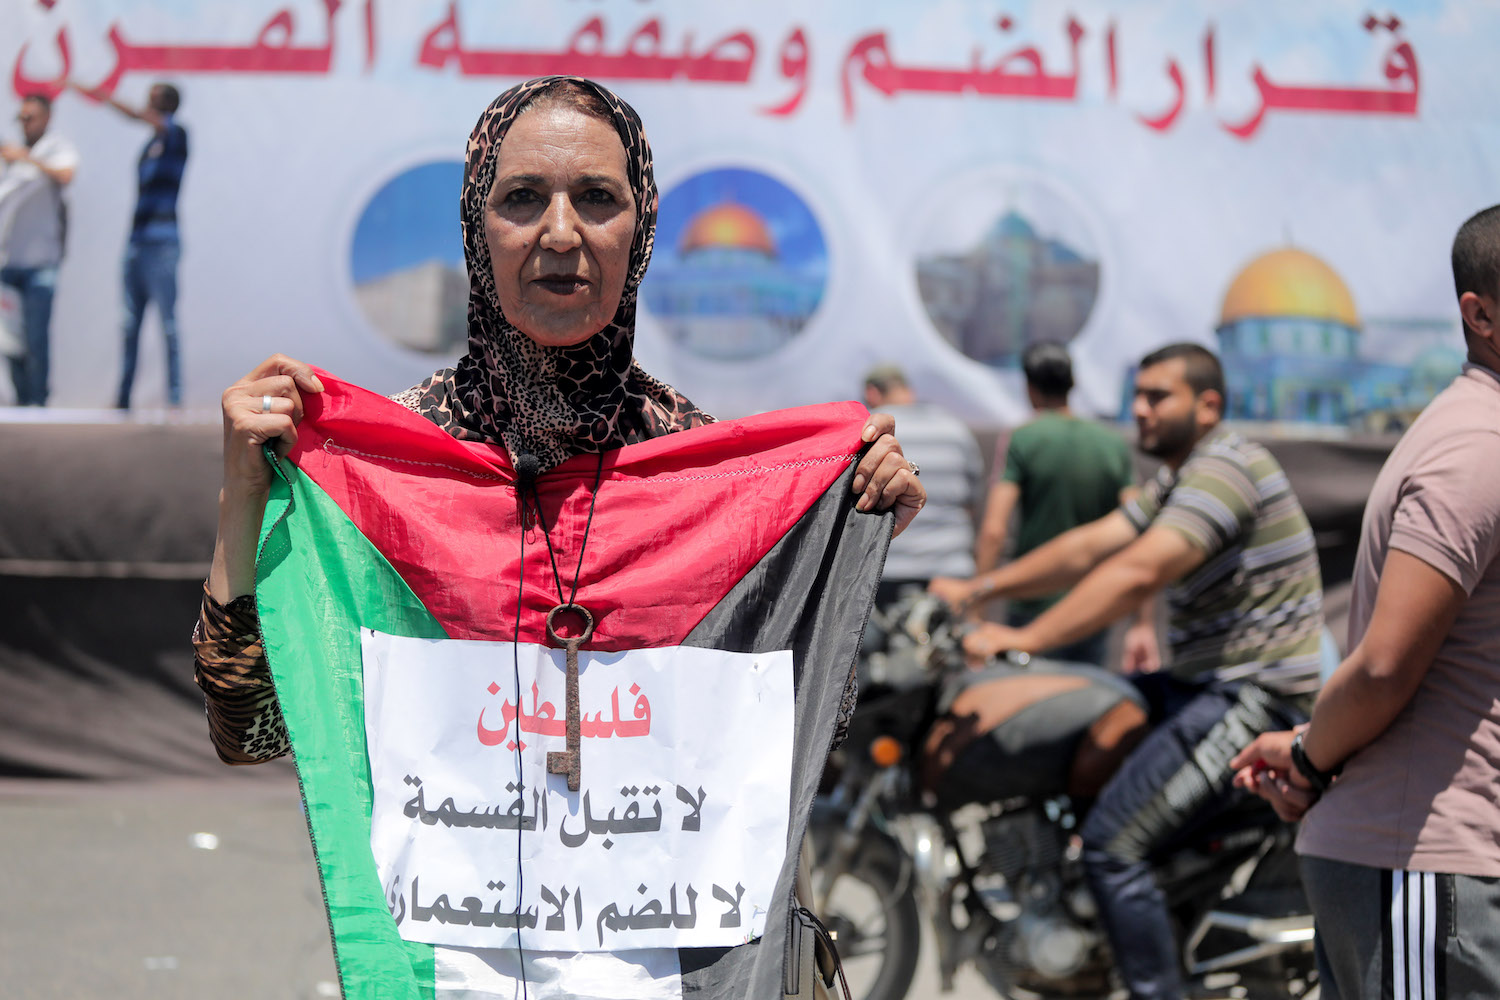 Palestinians in Gaza City demonstrate against Israel's plan to annex large swaths of the West Bank, July 1, 2020. (Mohammed Zaanoun)